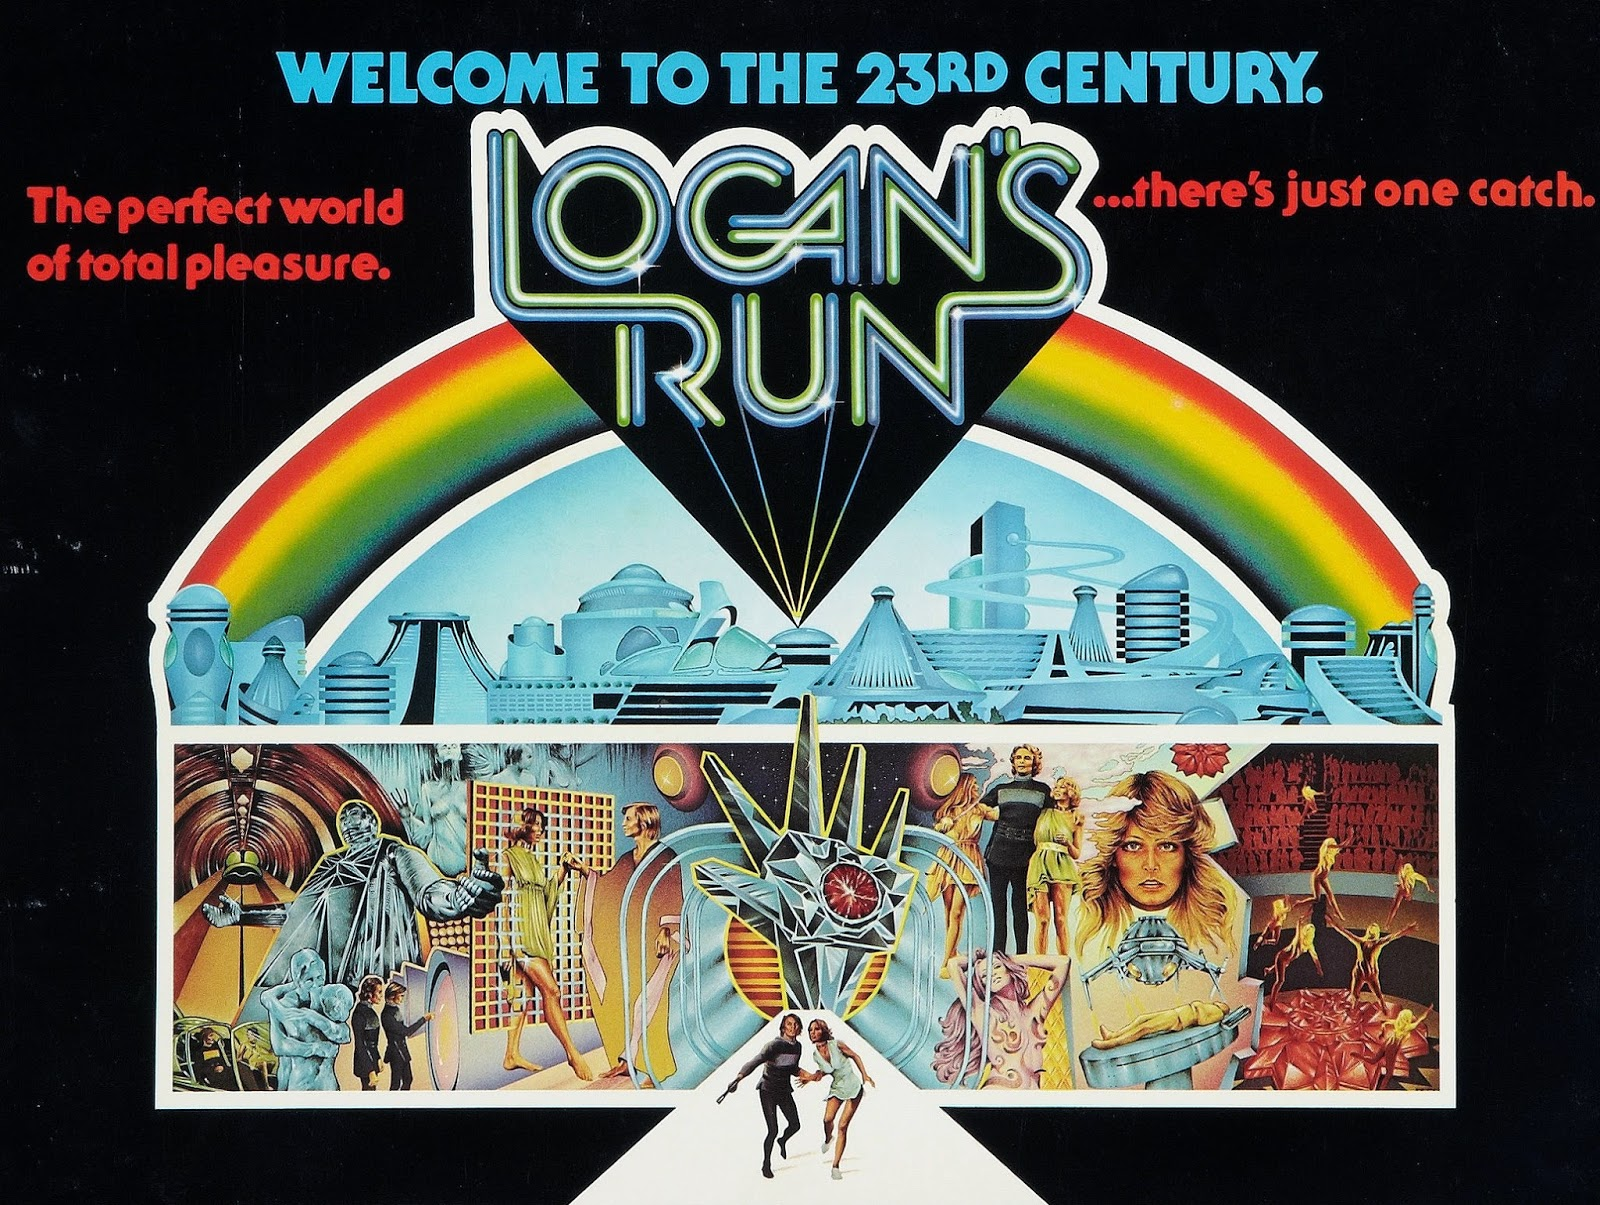 Logan S Run Poster Flashbak